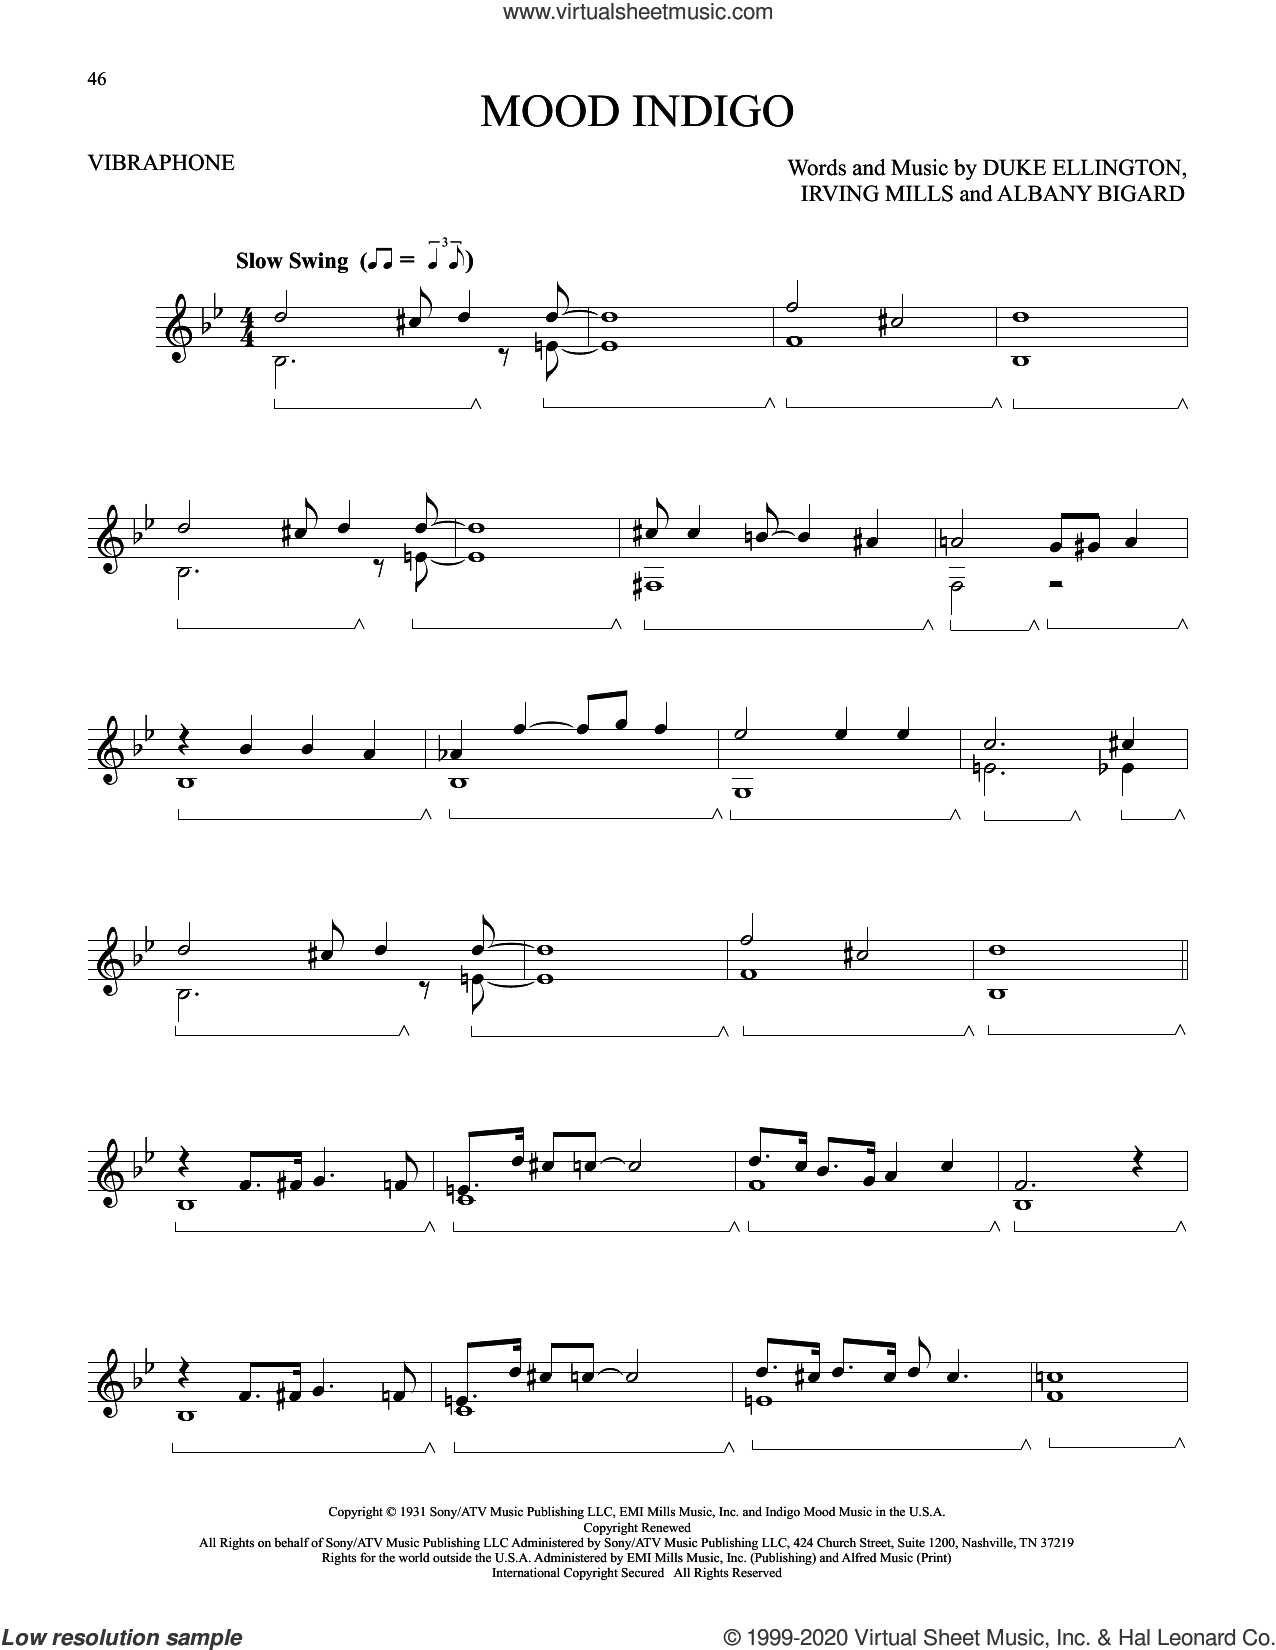 Mood Indigo sheet music for Vibraphone Solo by Duke Ellington, Albany Bigard and Irving Mills, intermediate skill level